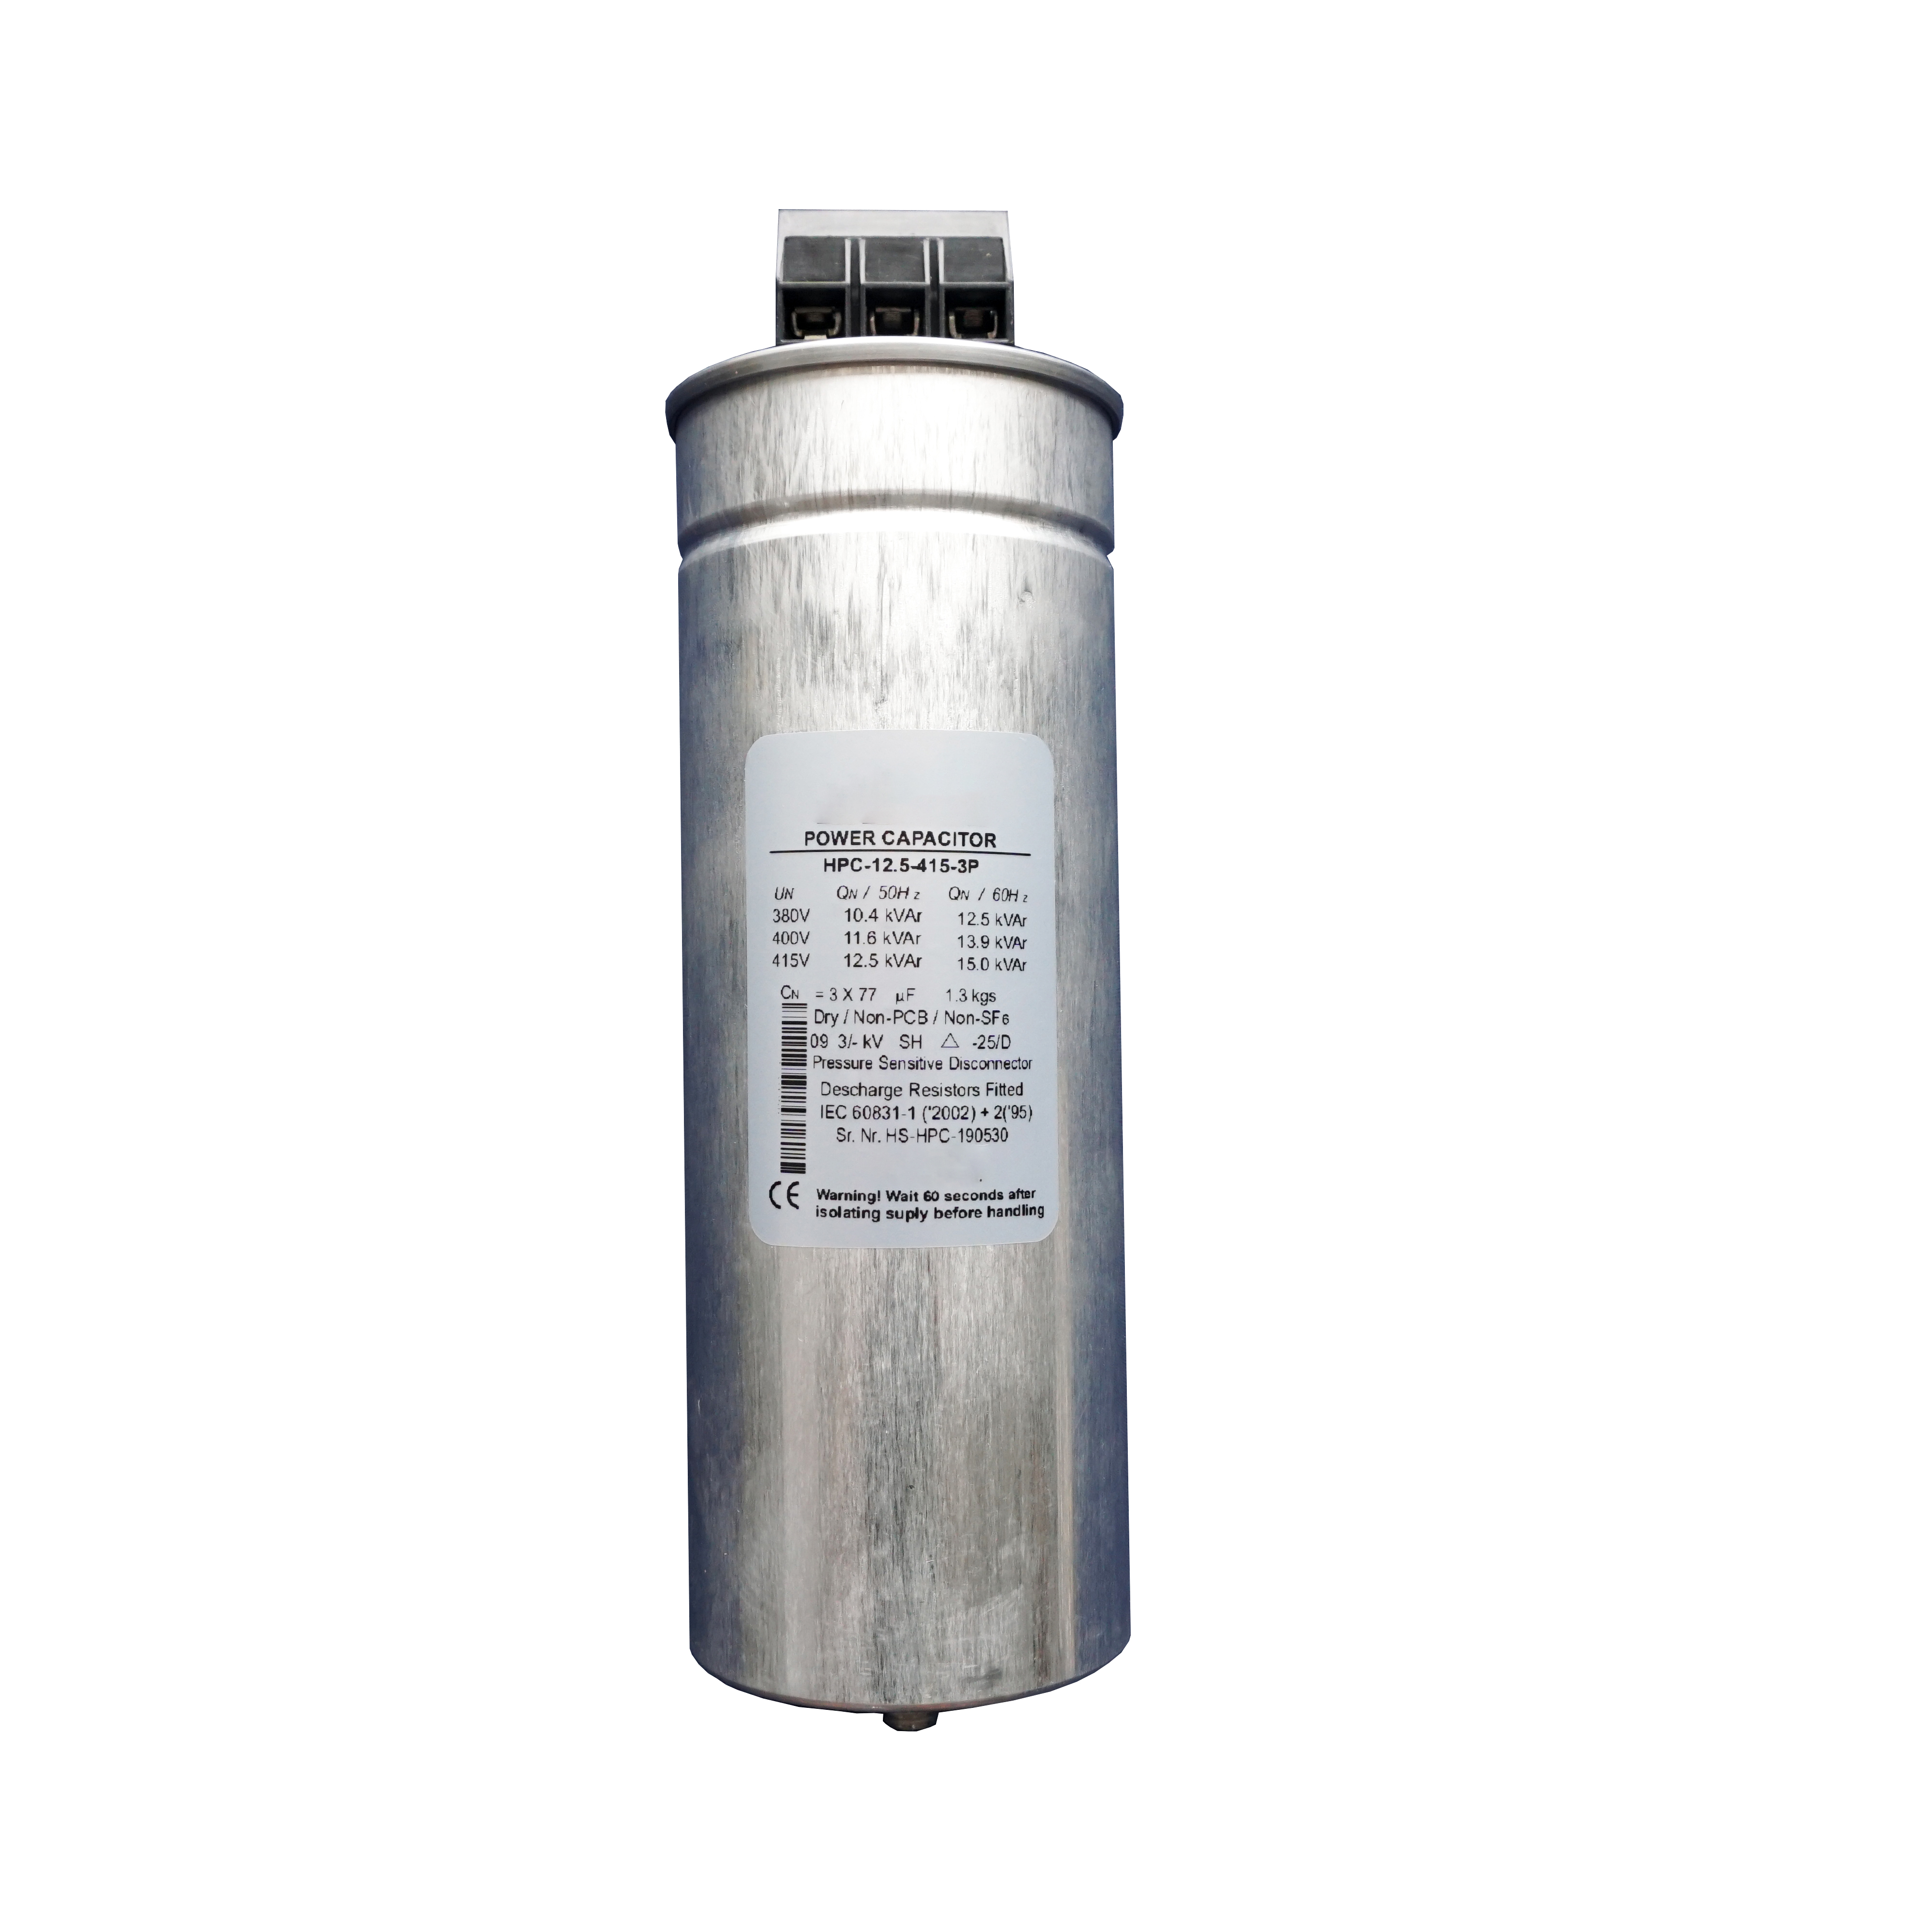 30 Kvar Power Capacitor Bank Buy 30 Kvar Power Capacitor Bank Smart 30 Kvar Power Capacitor Bank 30 Kvar Power Capacitor Bank For Electrical Equipment Product On Alibaba Com